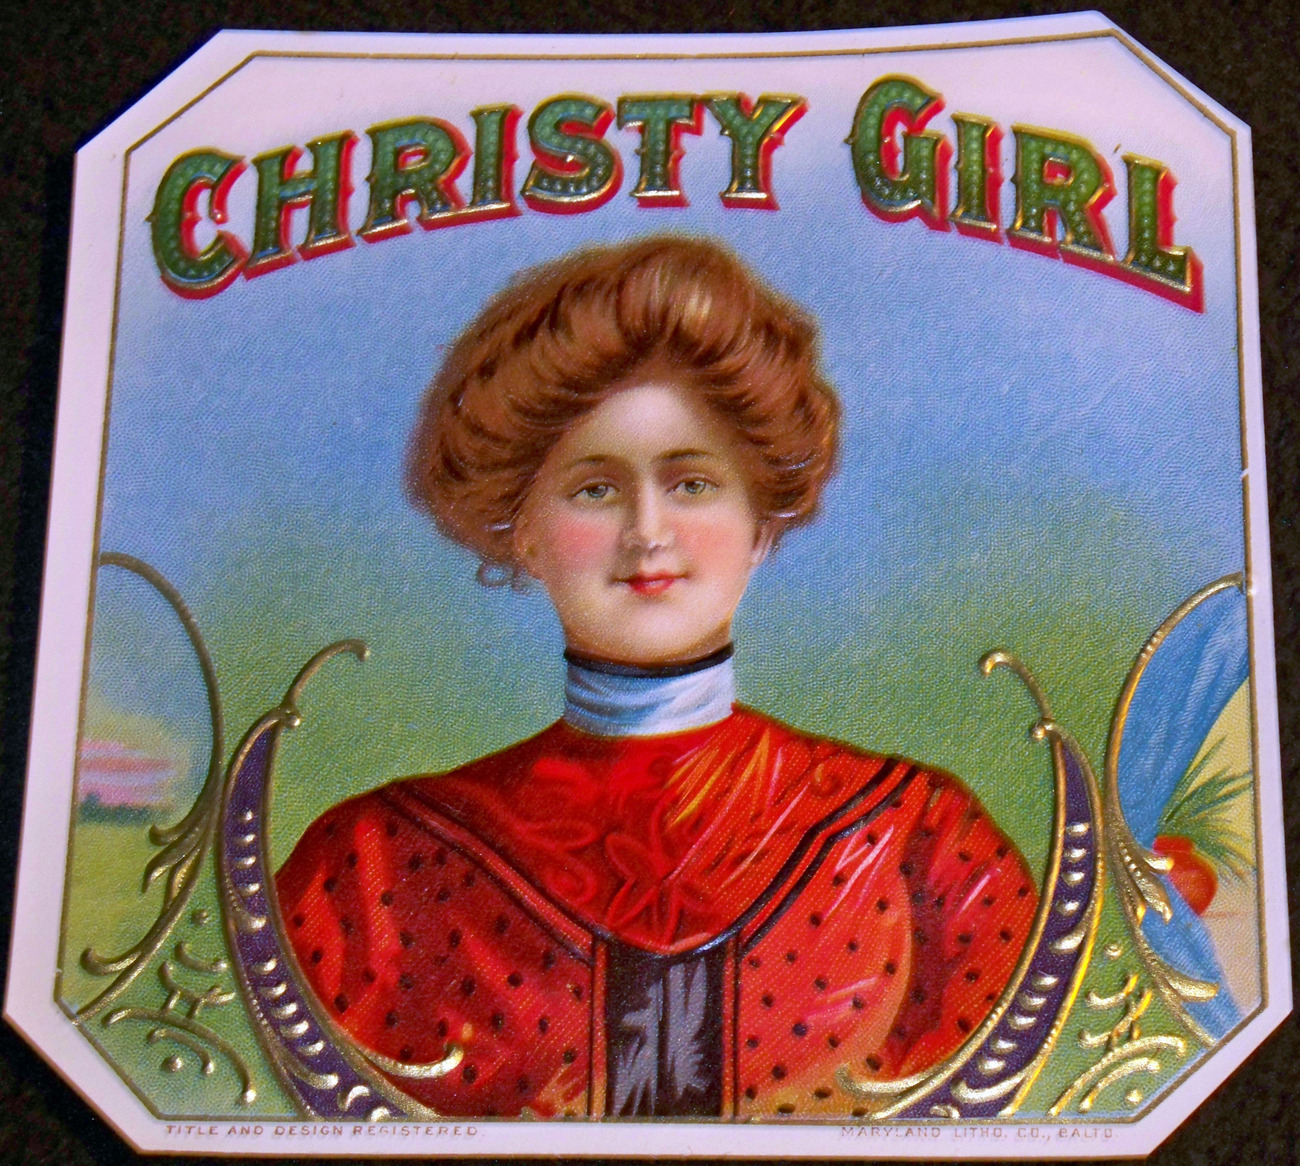 Christy girl out cigar label 001